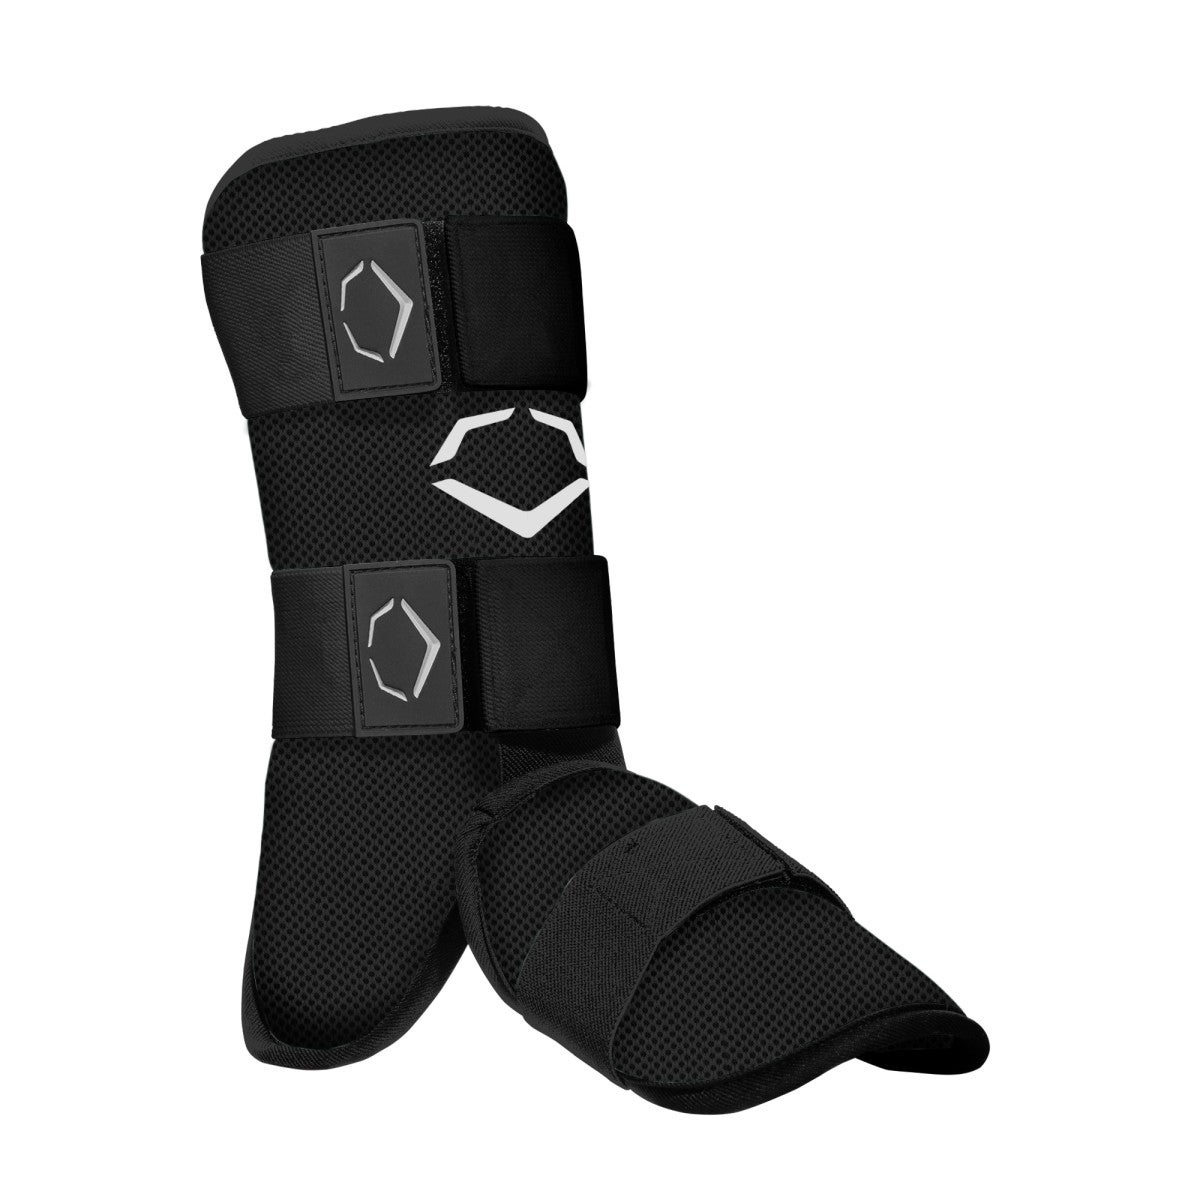 Adult SRZ-1 Batter's Leg Guard